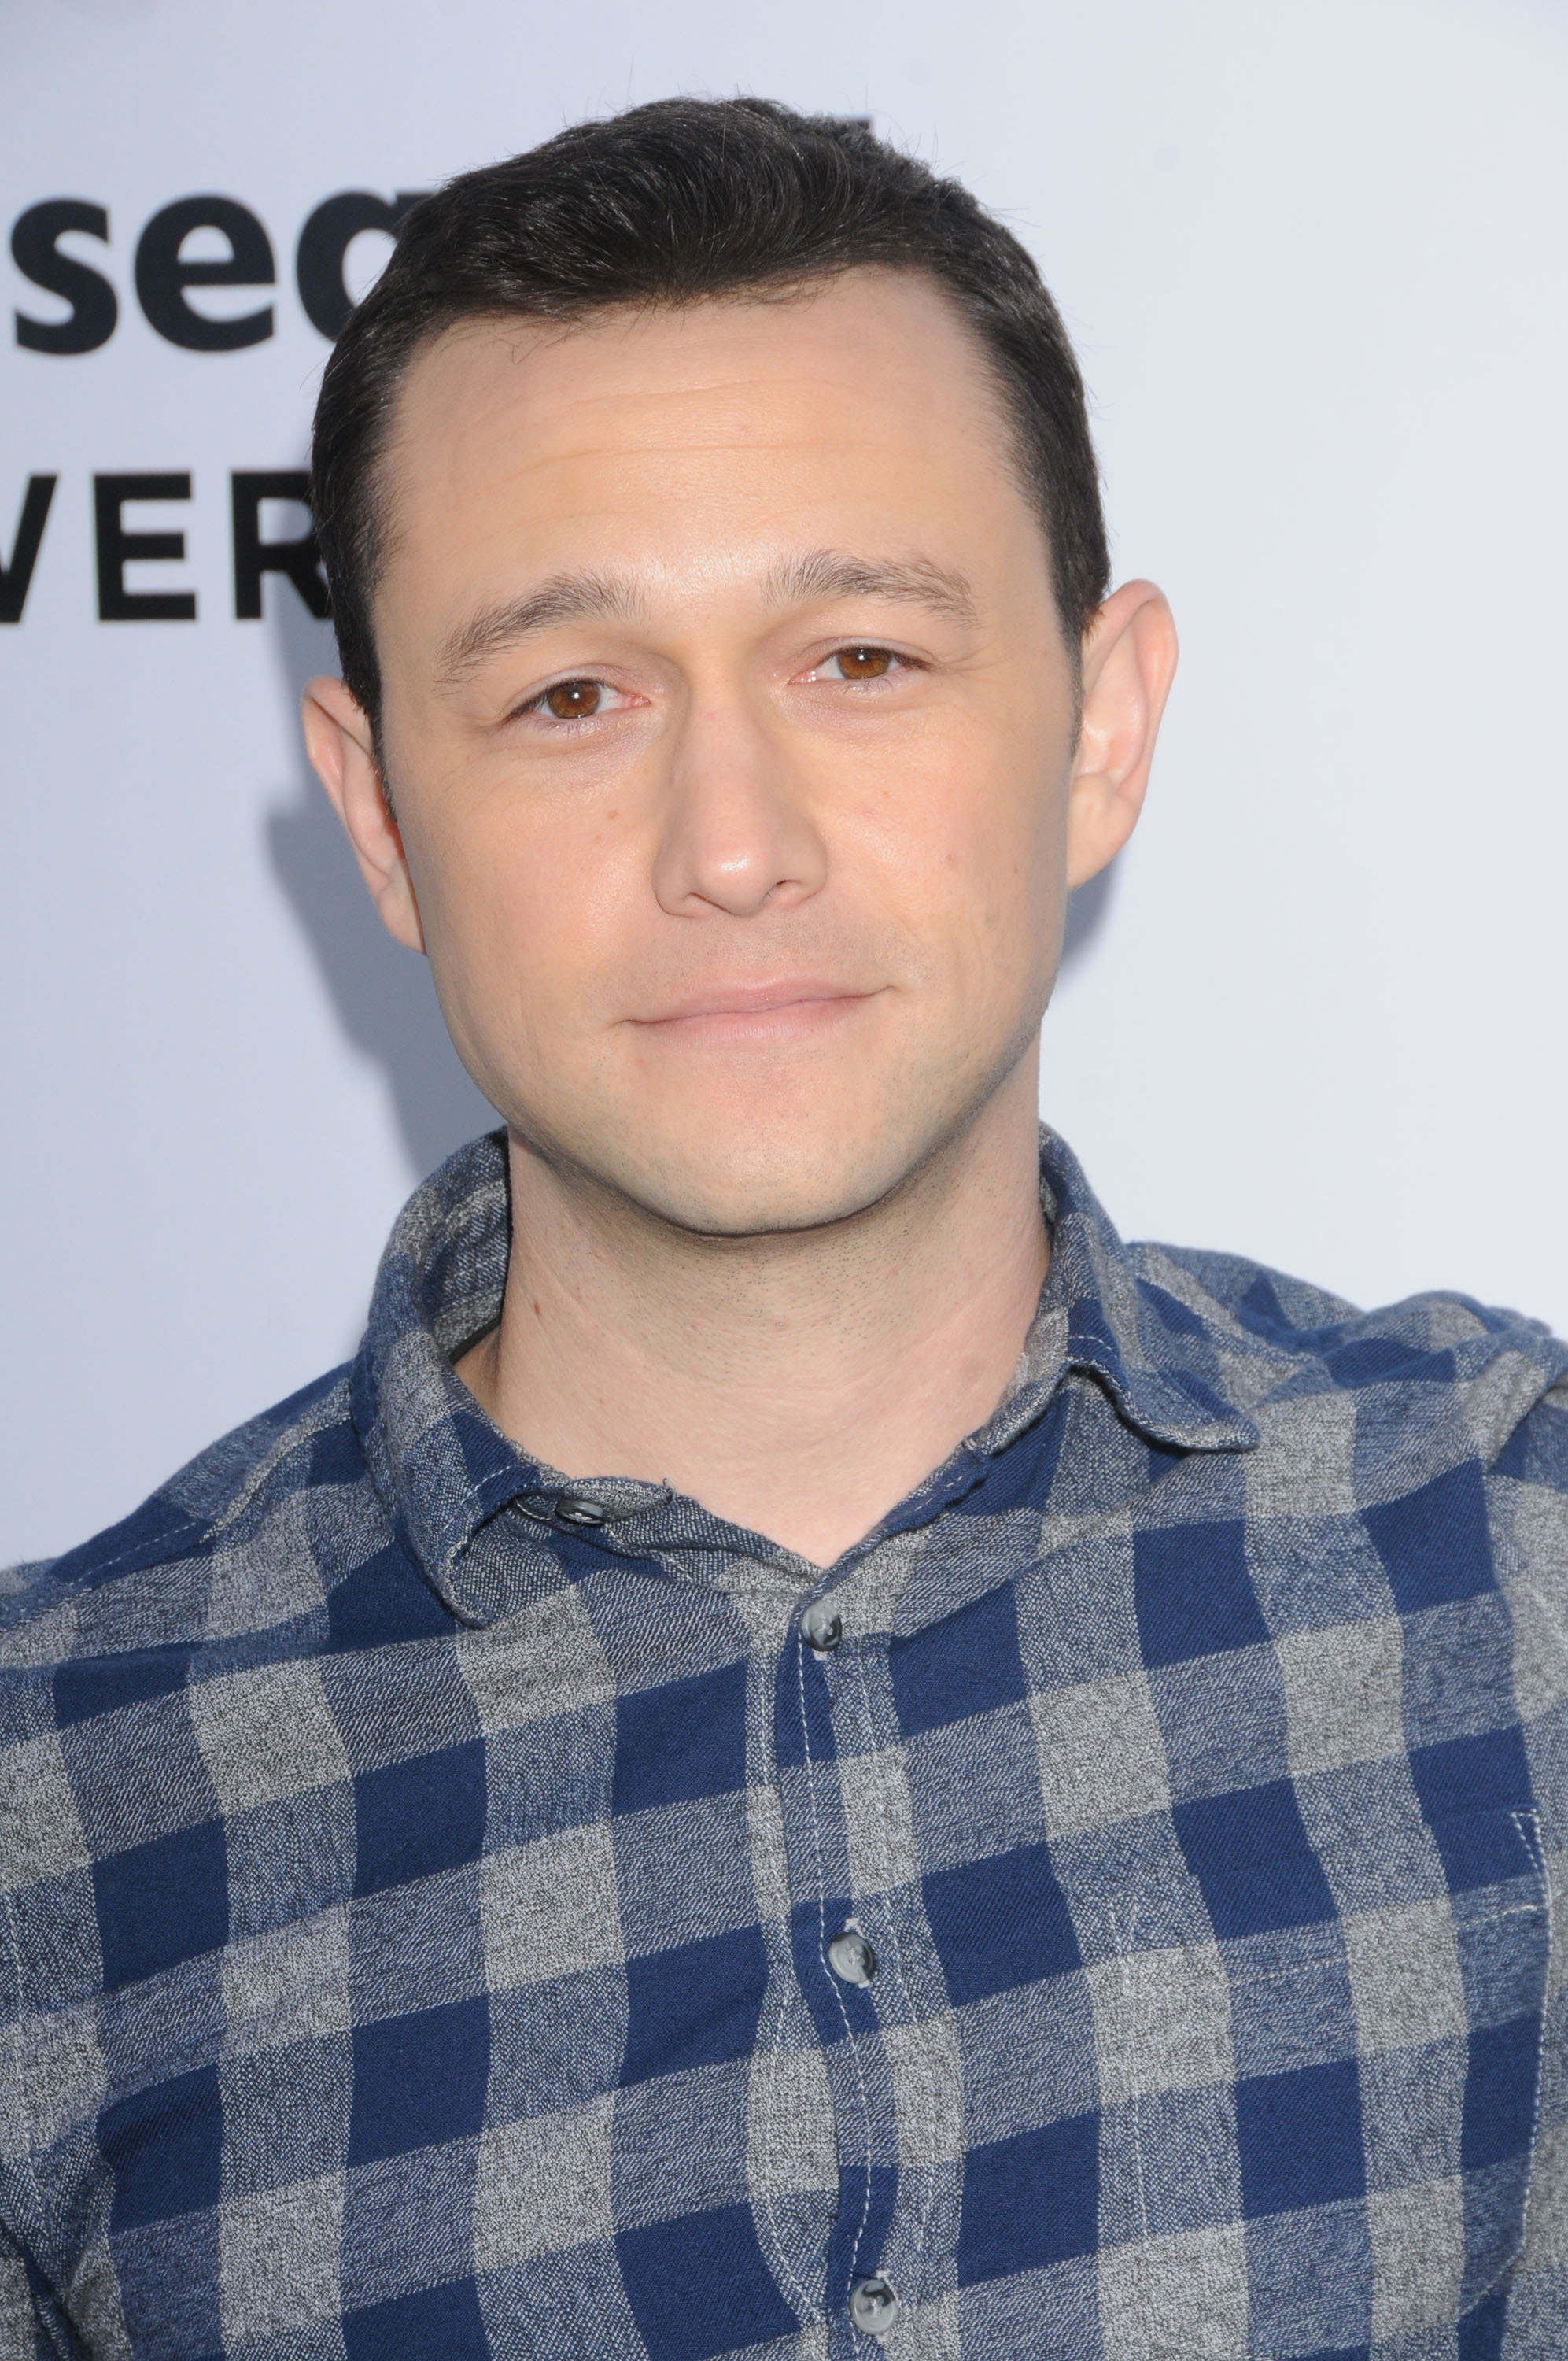 """Joseph Gordon Levitt attends a screening of """"An Inconvenient Sequel: Truth To Power"""" in Los Angeles on May 6, 2017."""